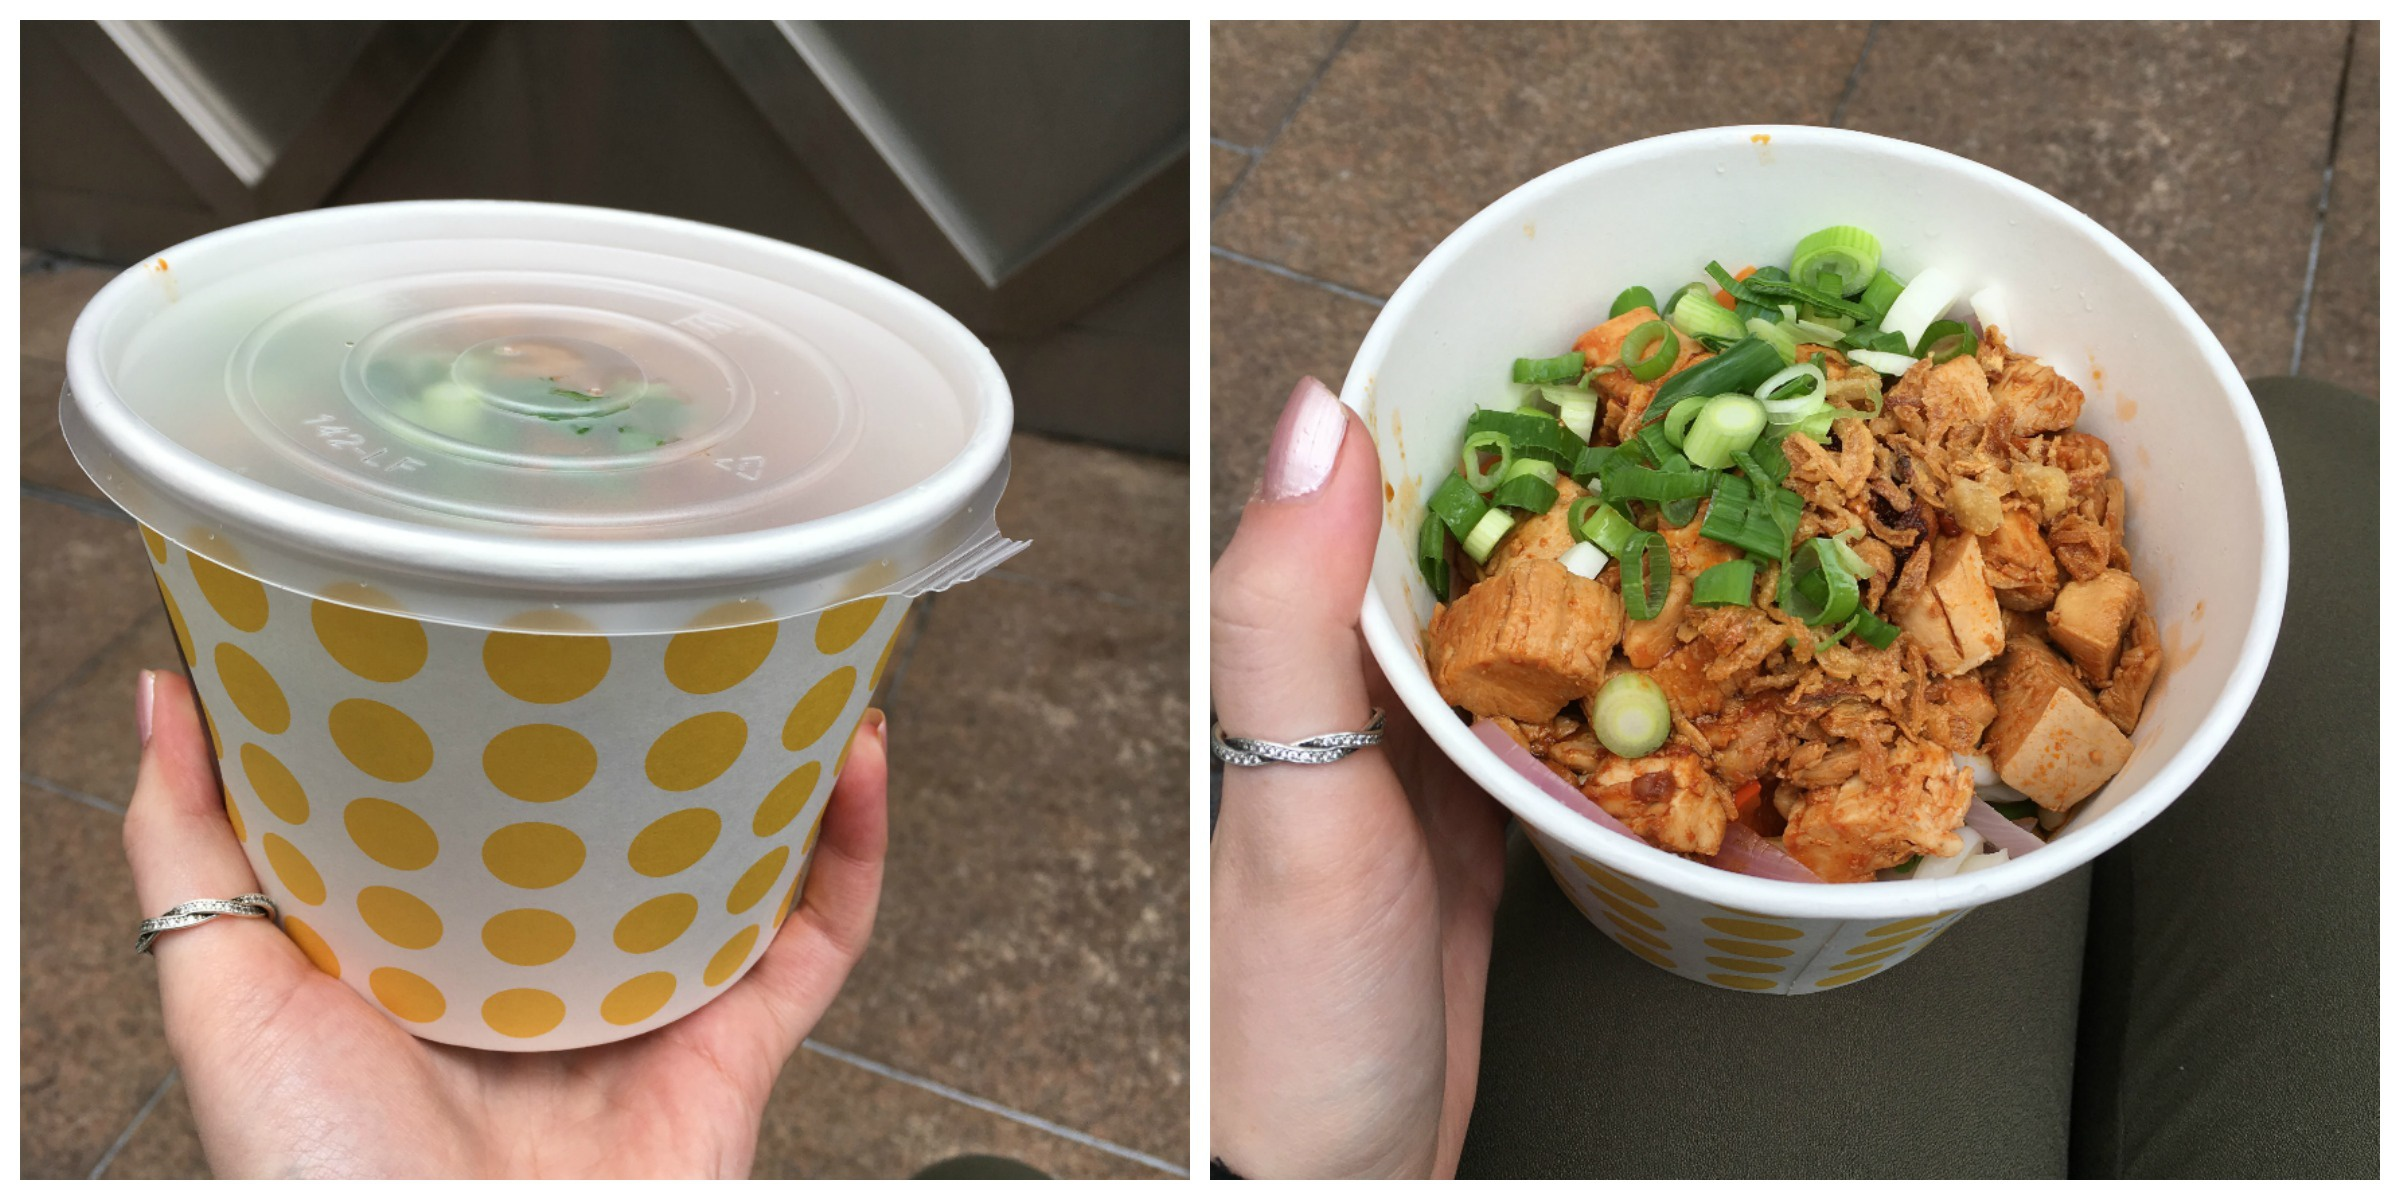 Spicy chicken noodles from 'Simply Noodles' in Canary Wharf